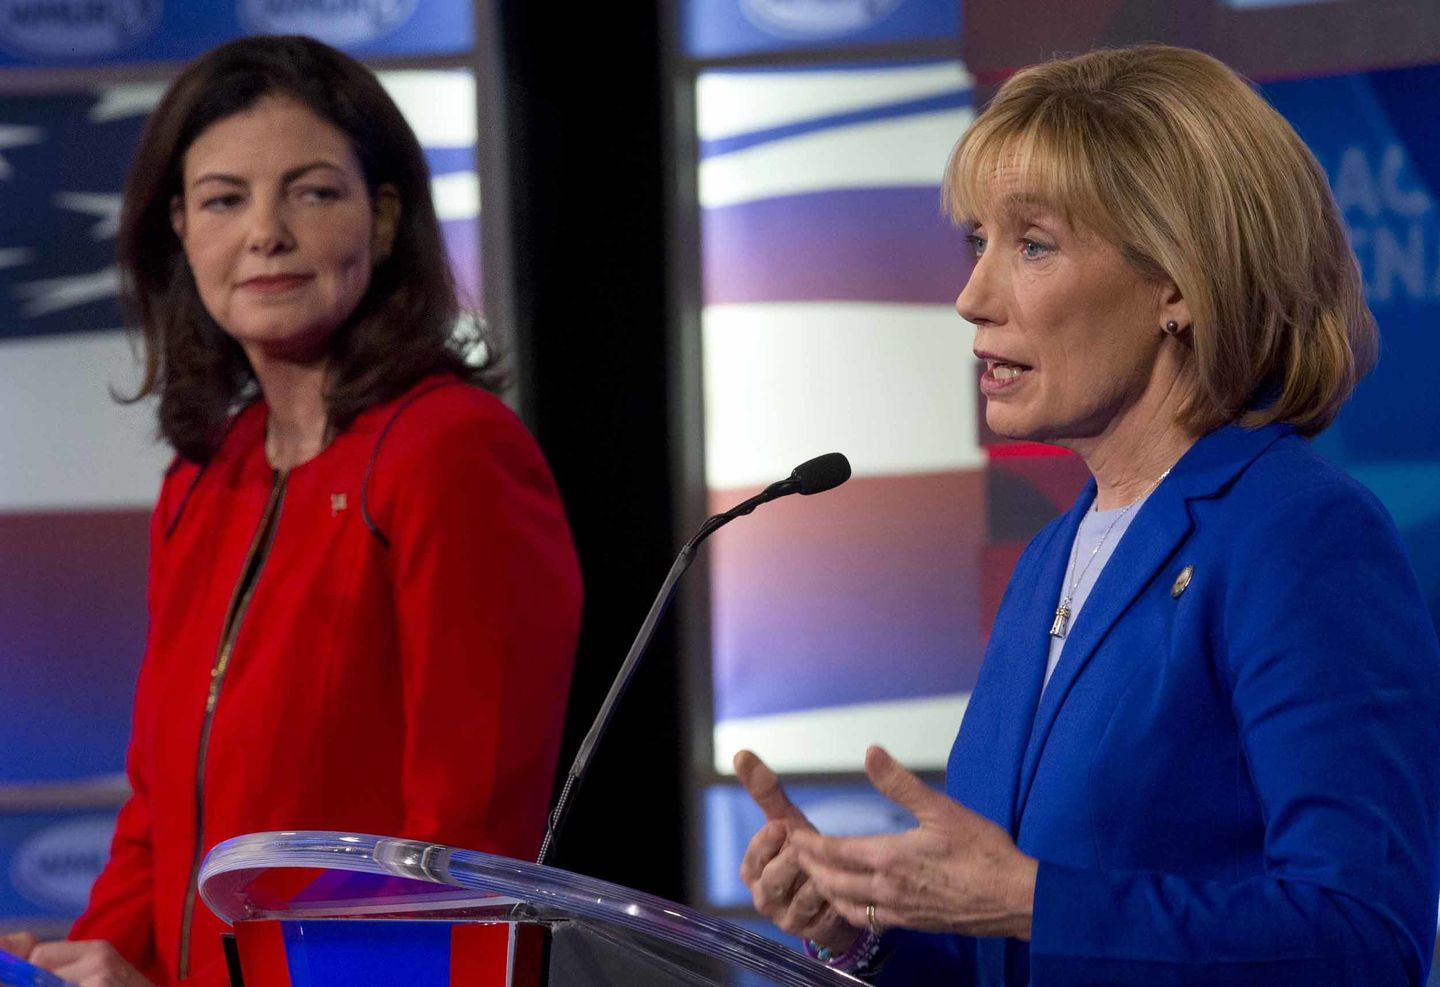 Hassan, Ayotte paint each other as weak on cybersecurity